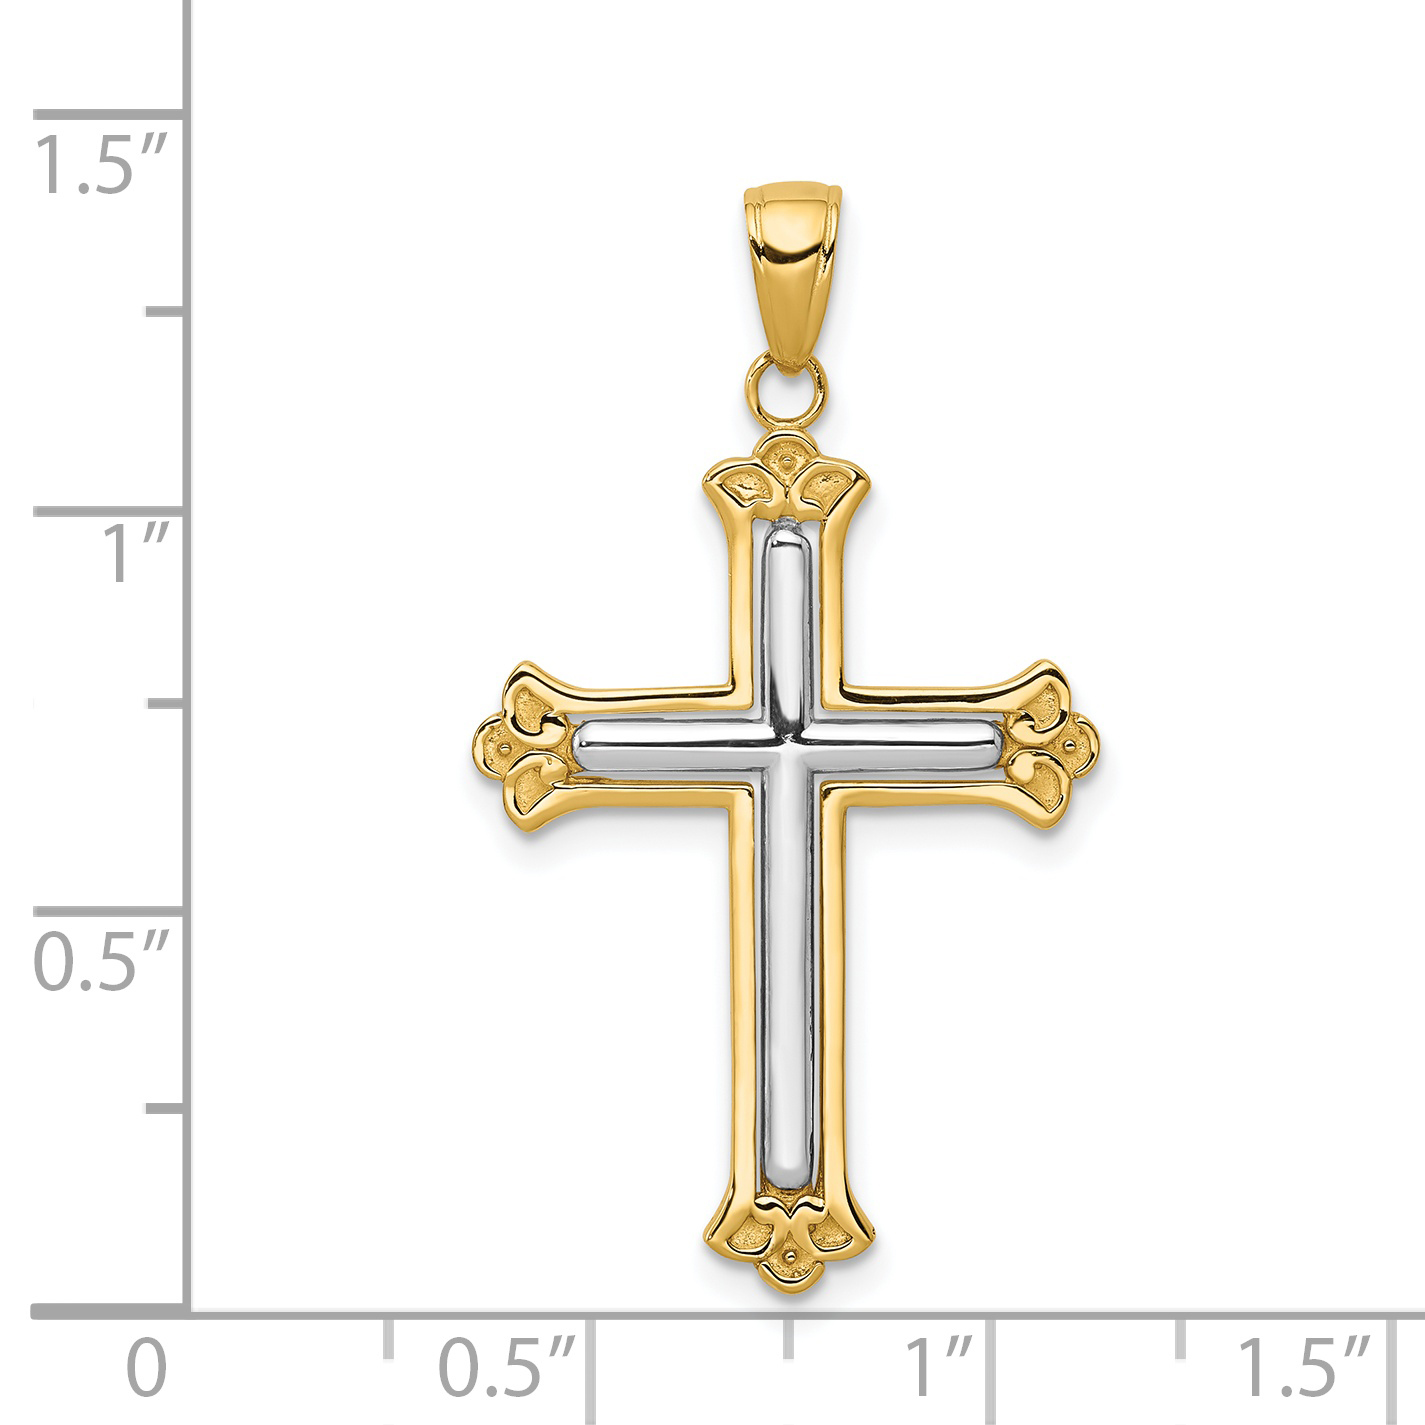 14k Two Tone Yellow Gold White Cross Religious In Budded Frame Pendant Charm Necklace Fleur De Lis Fine Jewelry Gifts For Women For Her - image 1 of 2